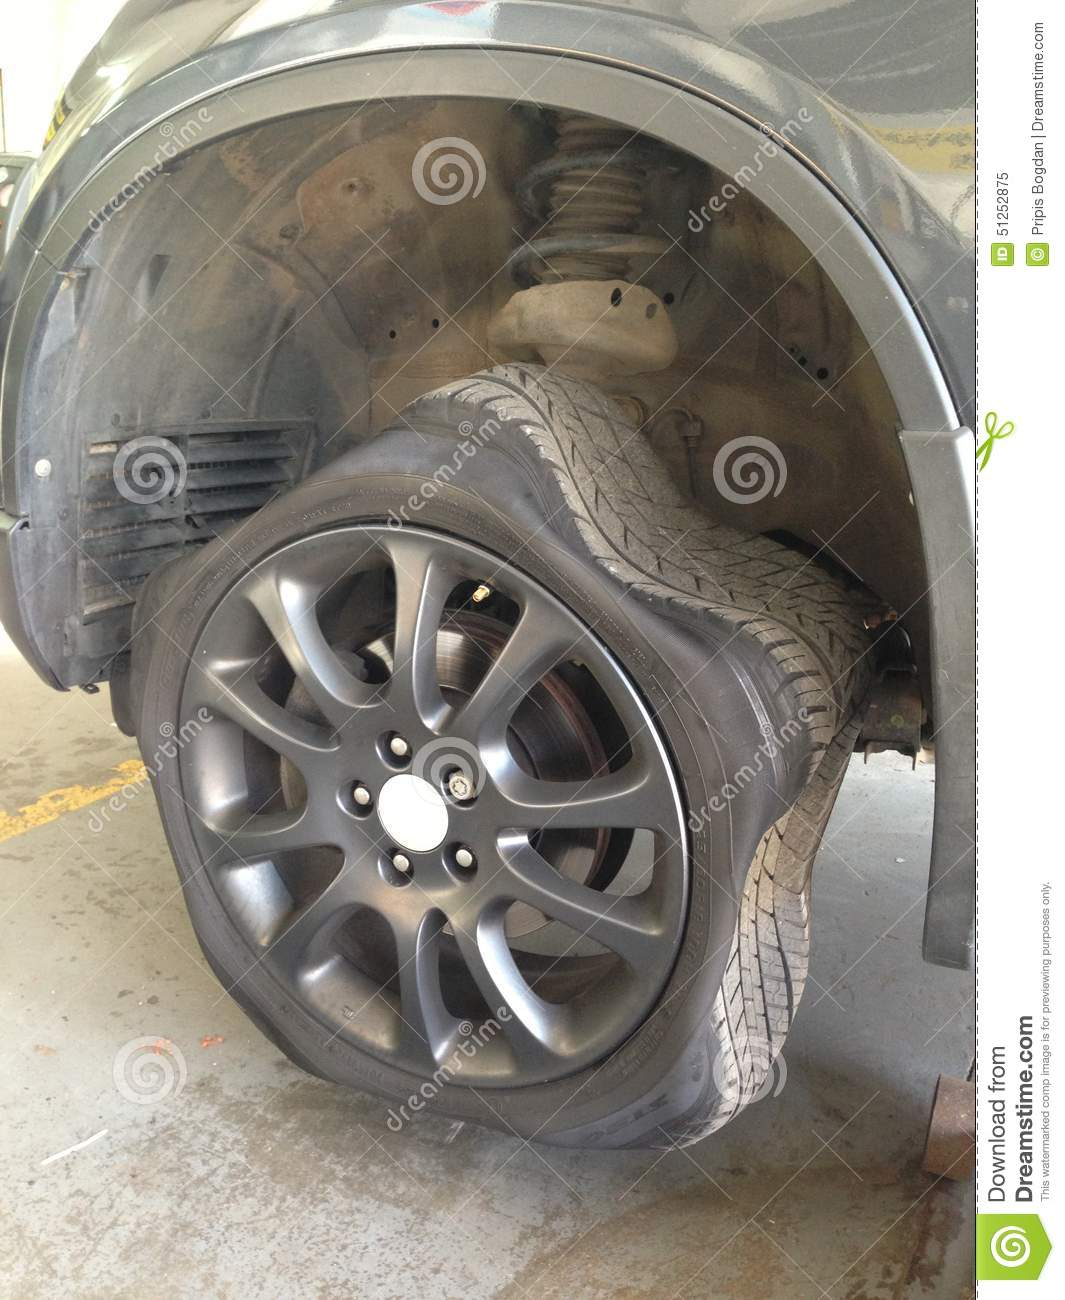 Car Tire Stock Photo - Image: 51252875